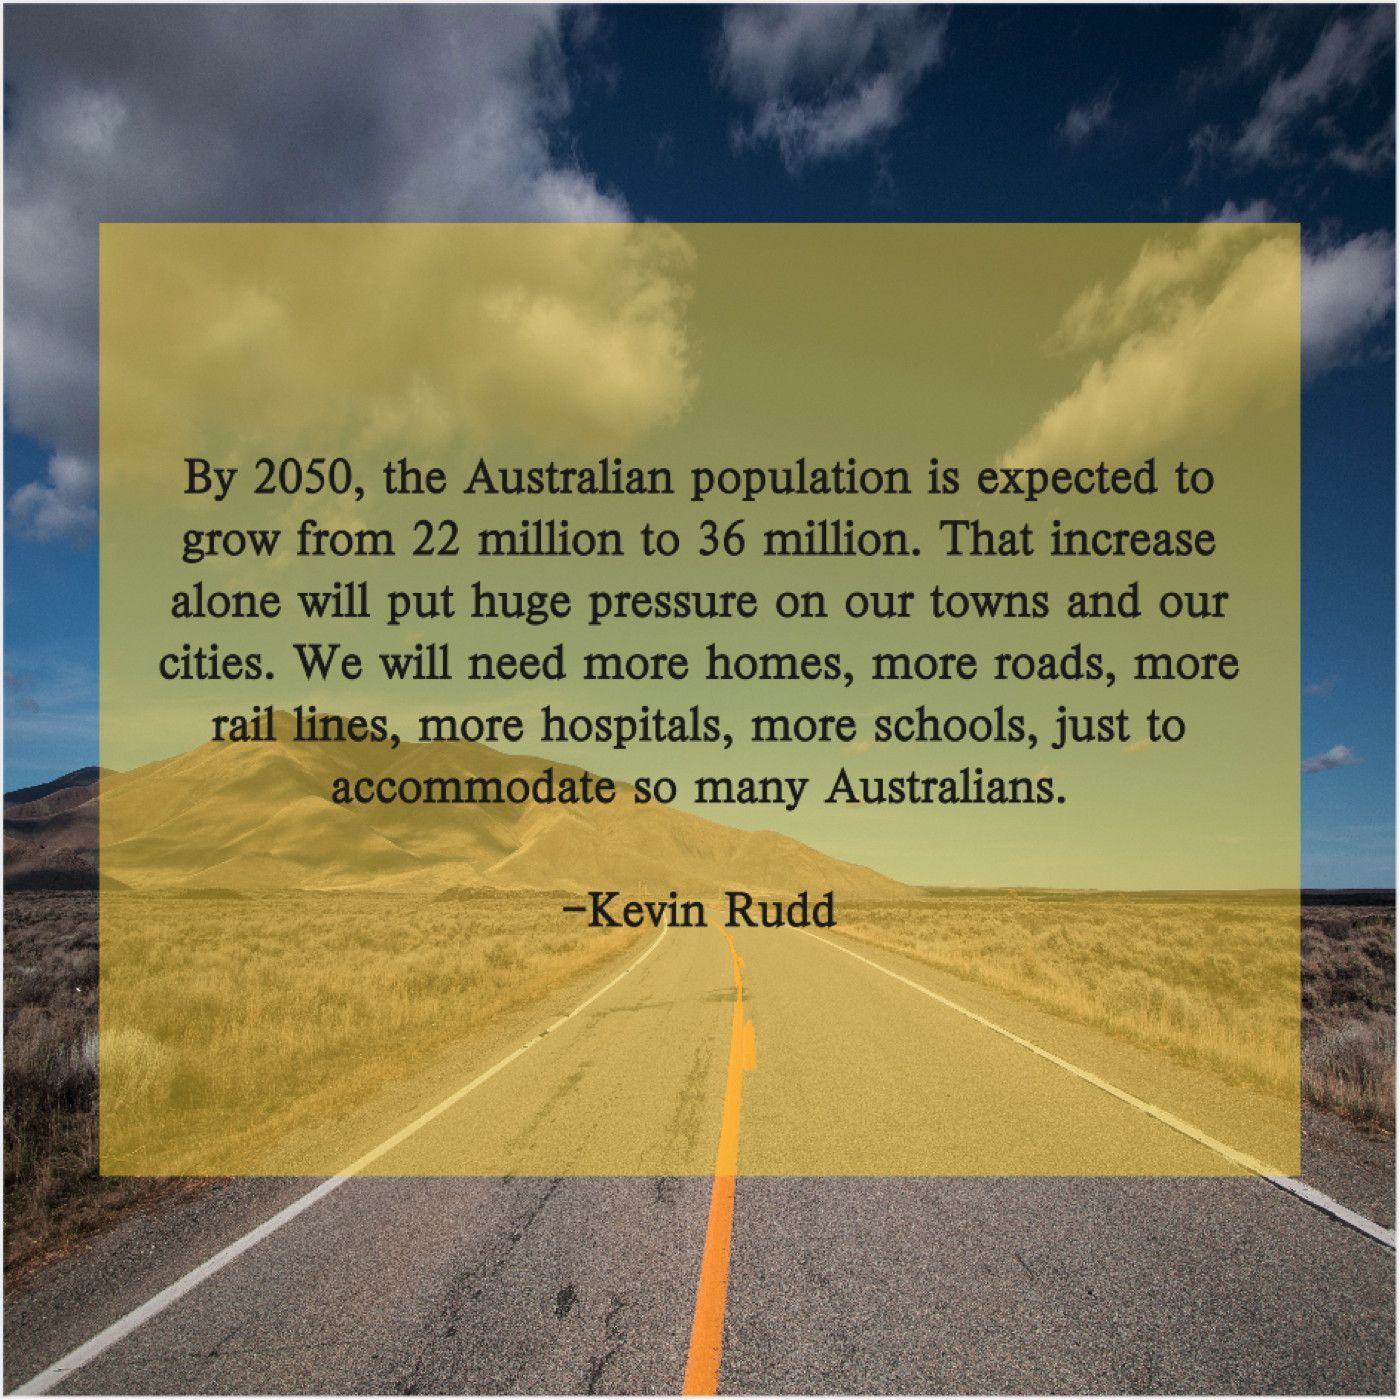 Kevin Rudd By 2050 The Australian Population By 2050 The Australian Population Is Expected To Grow From 22 Million To Michael Palin Emily Watson Viral Quotes